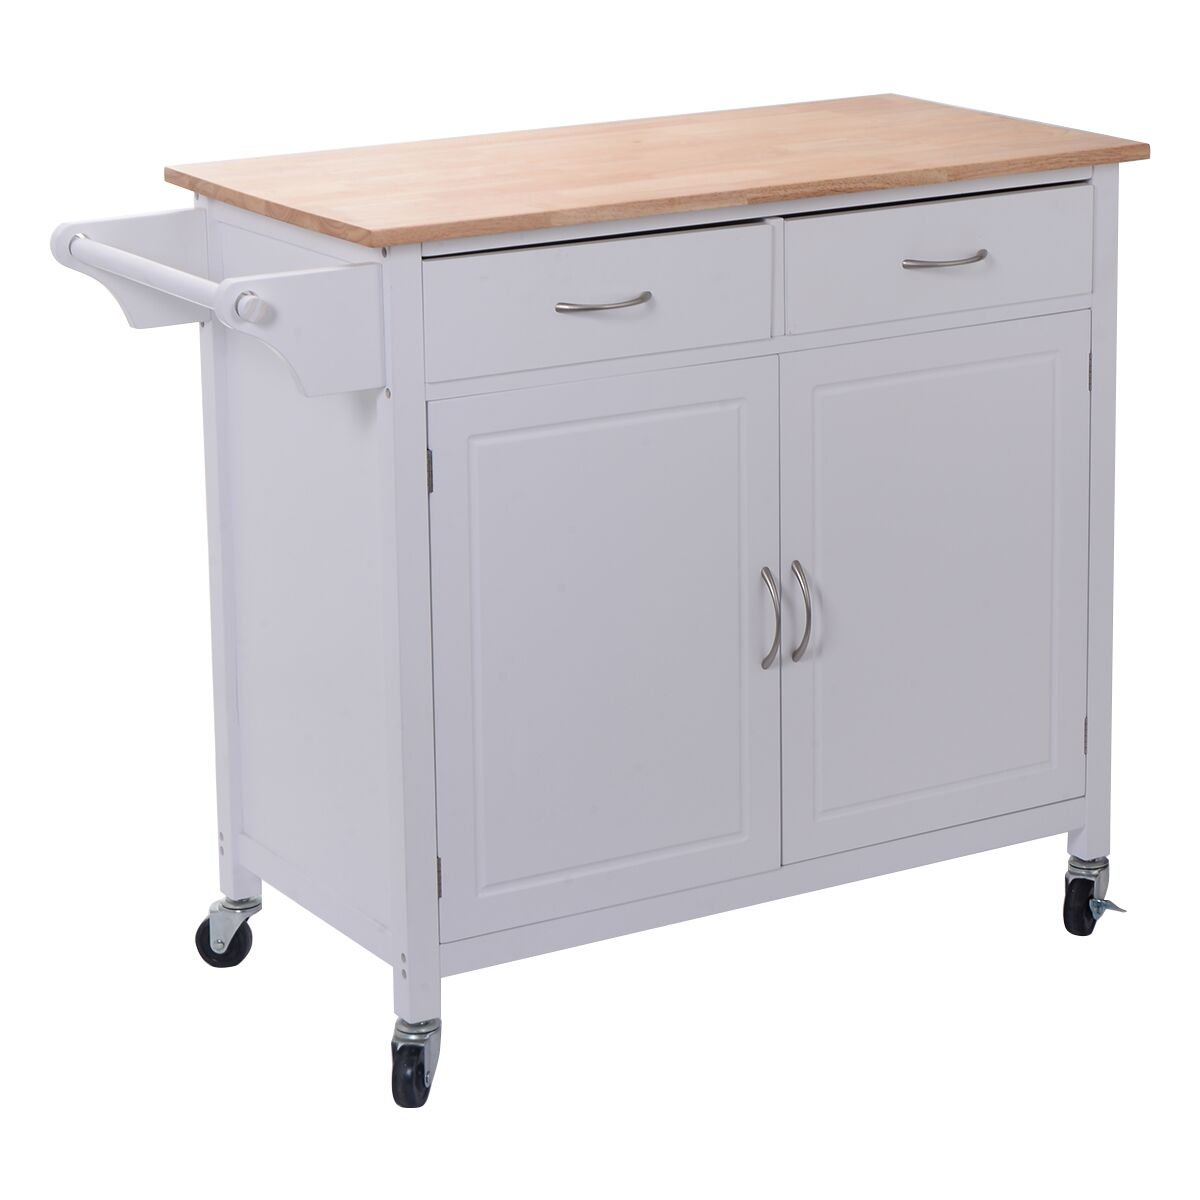 Amazon.com: Giantex Portable Kitchen Rolling Island Cart Wood Table ...